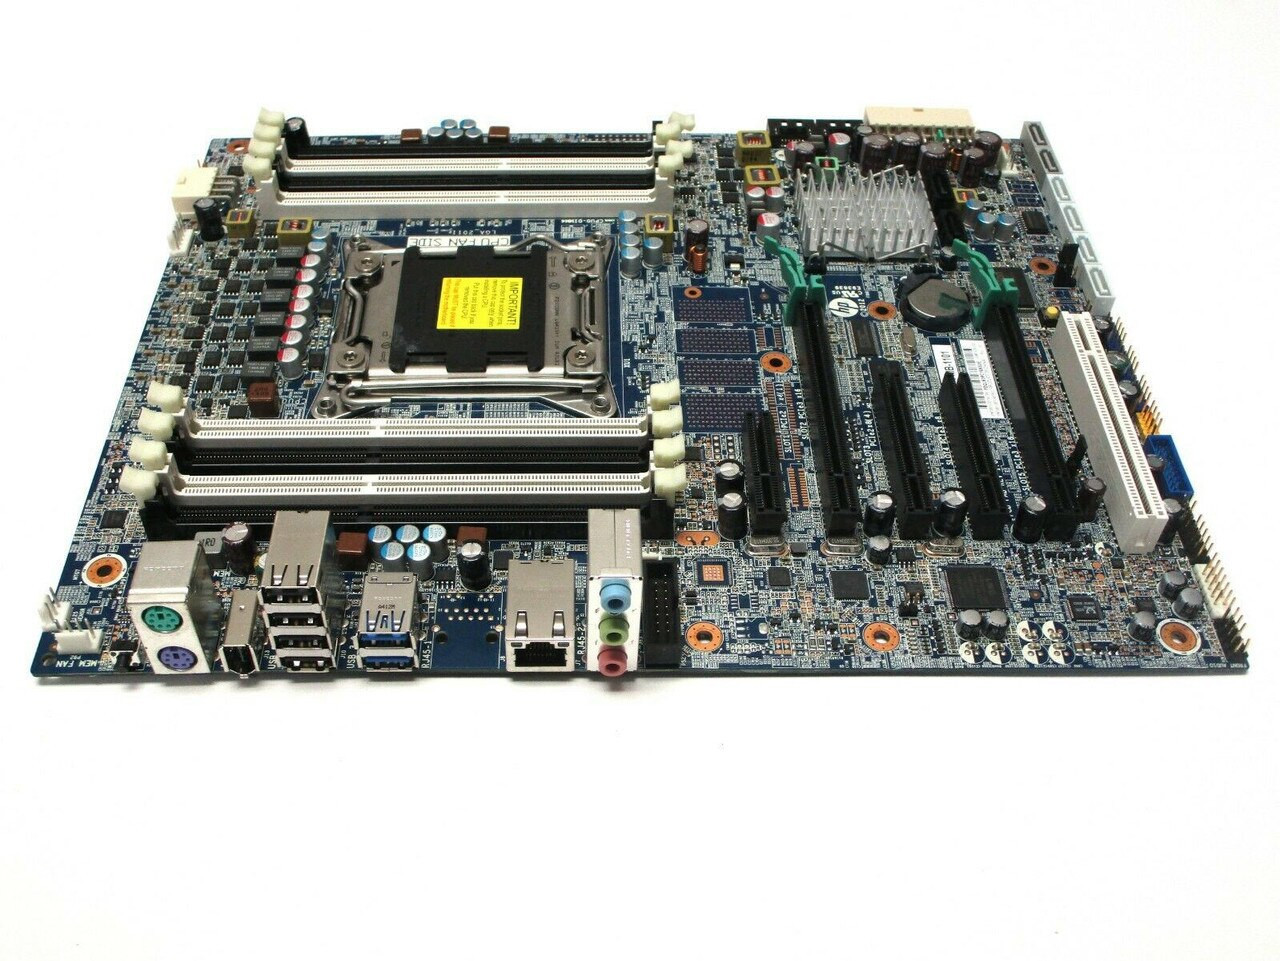 708615-001 HP Z420 WorkStation Xeon MotherBoard